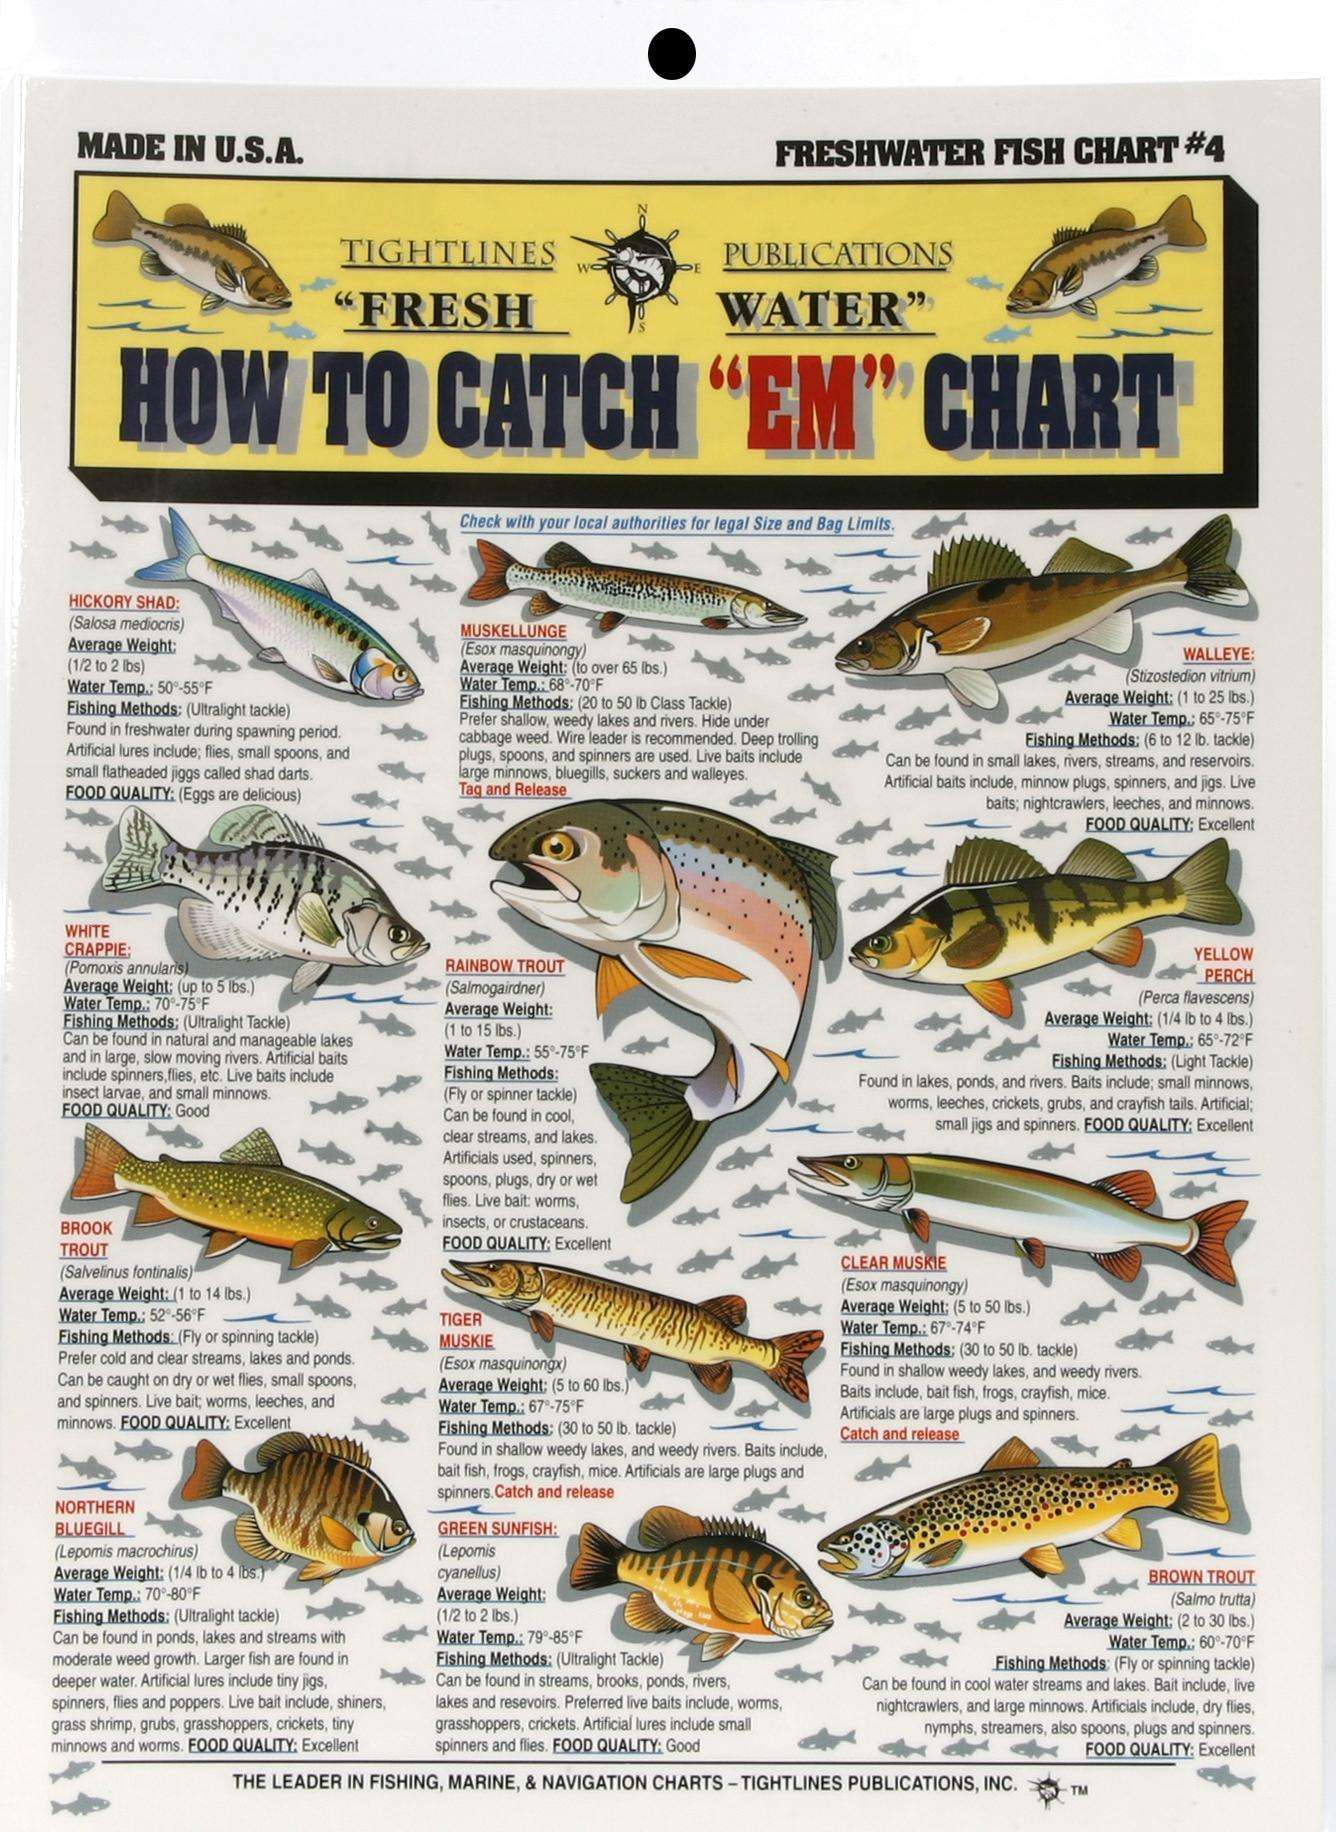 Tightline publications how to catchem freshwater chart 4 tightline publications how to catchem freshwater chart 4 detailed info outdoorshopping at outdoorshopping geenschuldenfo Image collections